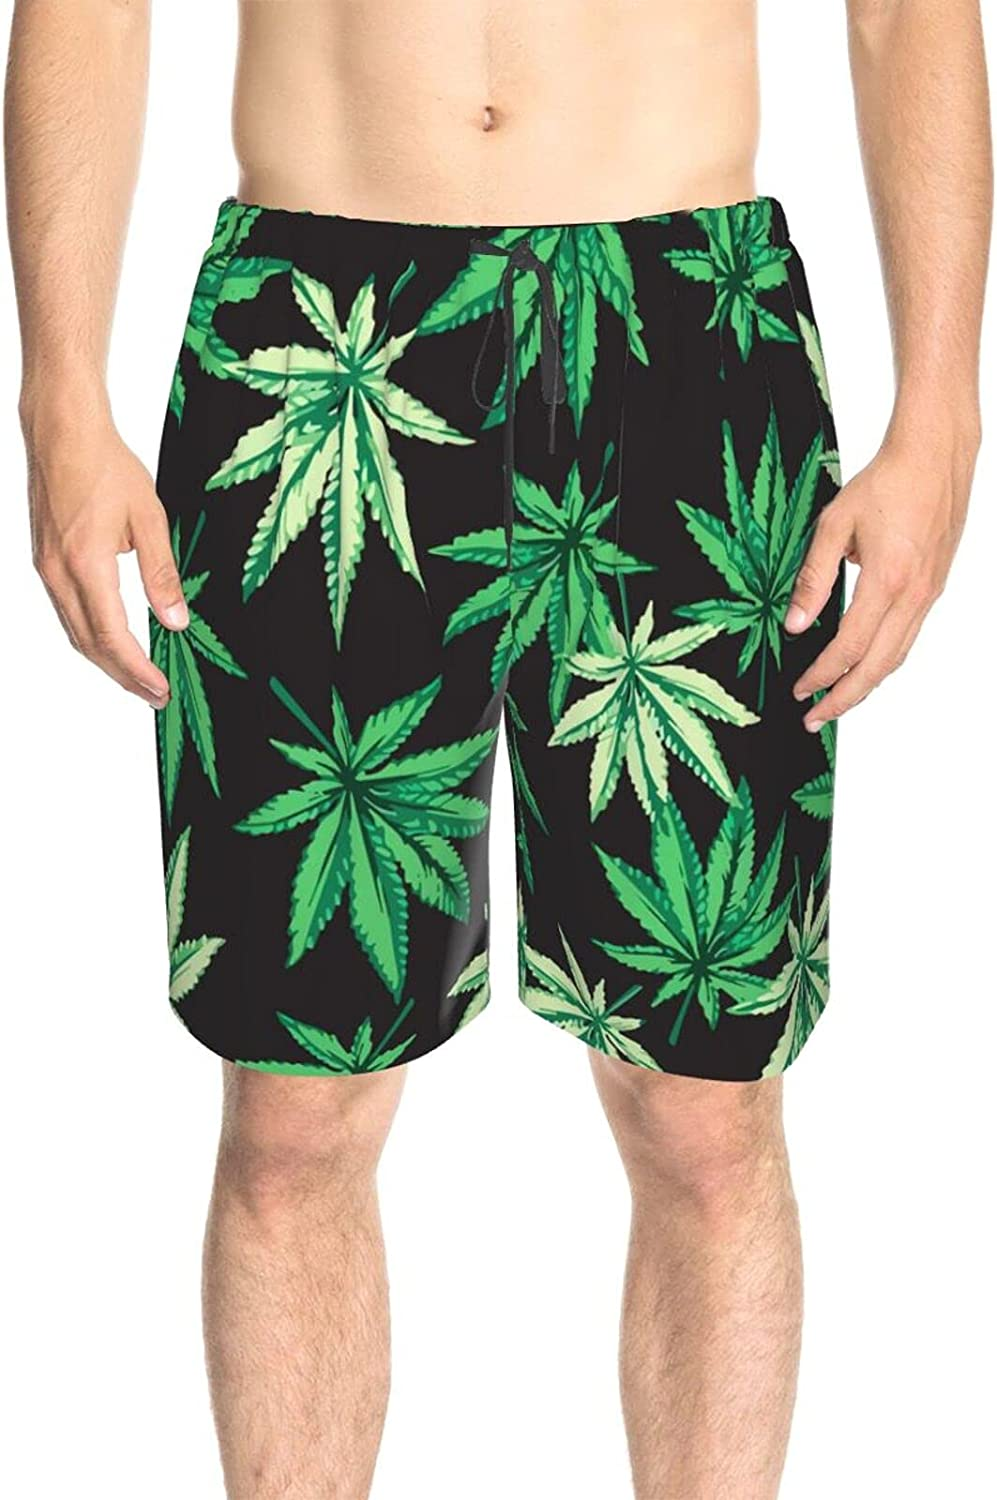 JINJUELS Men's Swim Shorts Green Weed Leaves Swim Short Boardshort Quick Dry Cool Swimwear Bathing Suits with Lining